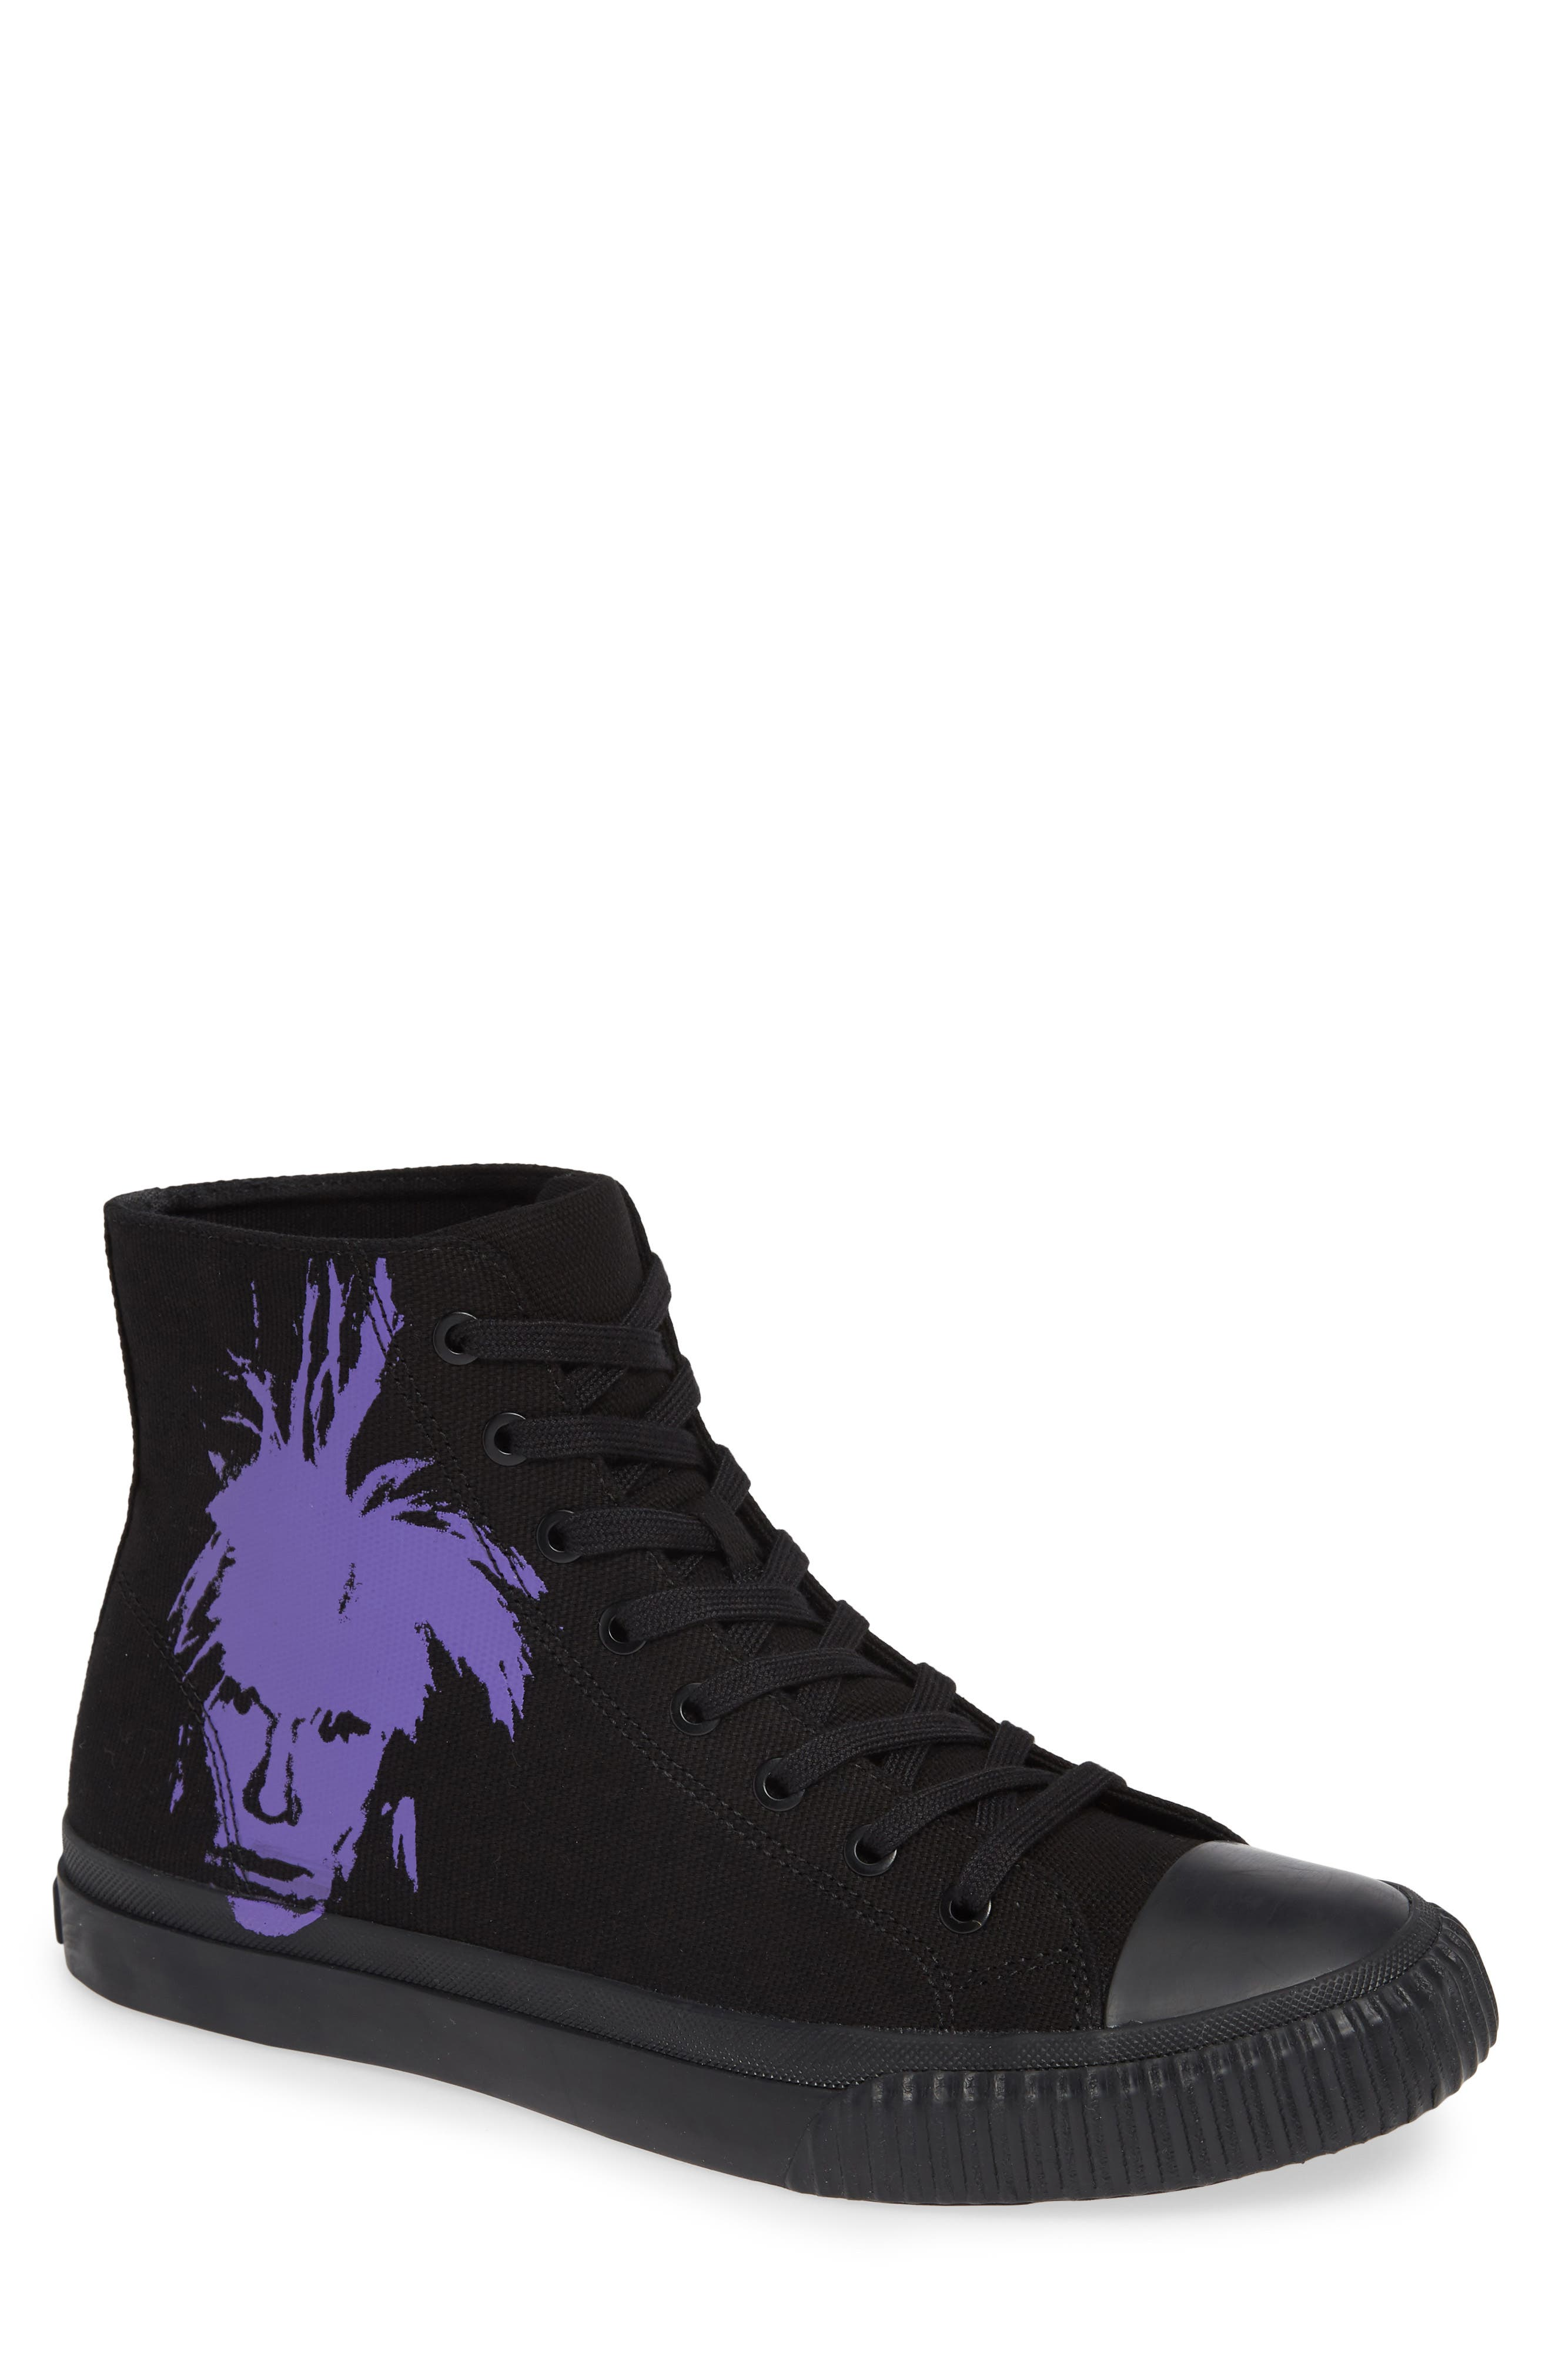 Iconic Warhol Sneaker,                         Main,                         color, BLACK/ PURPLE